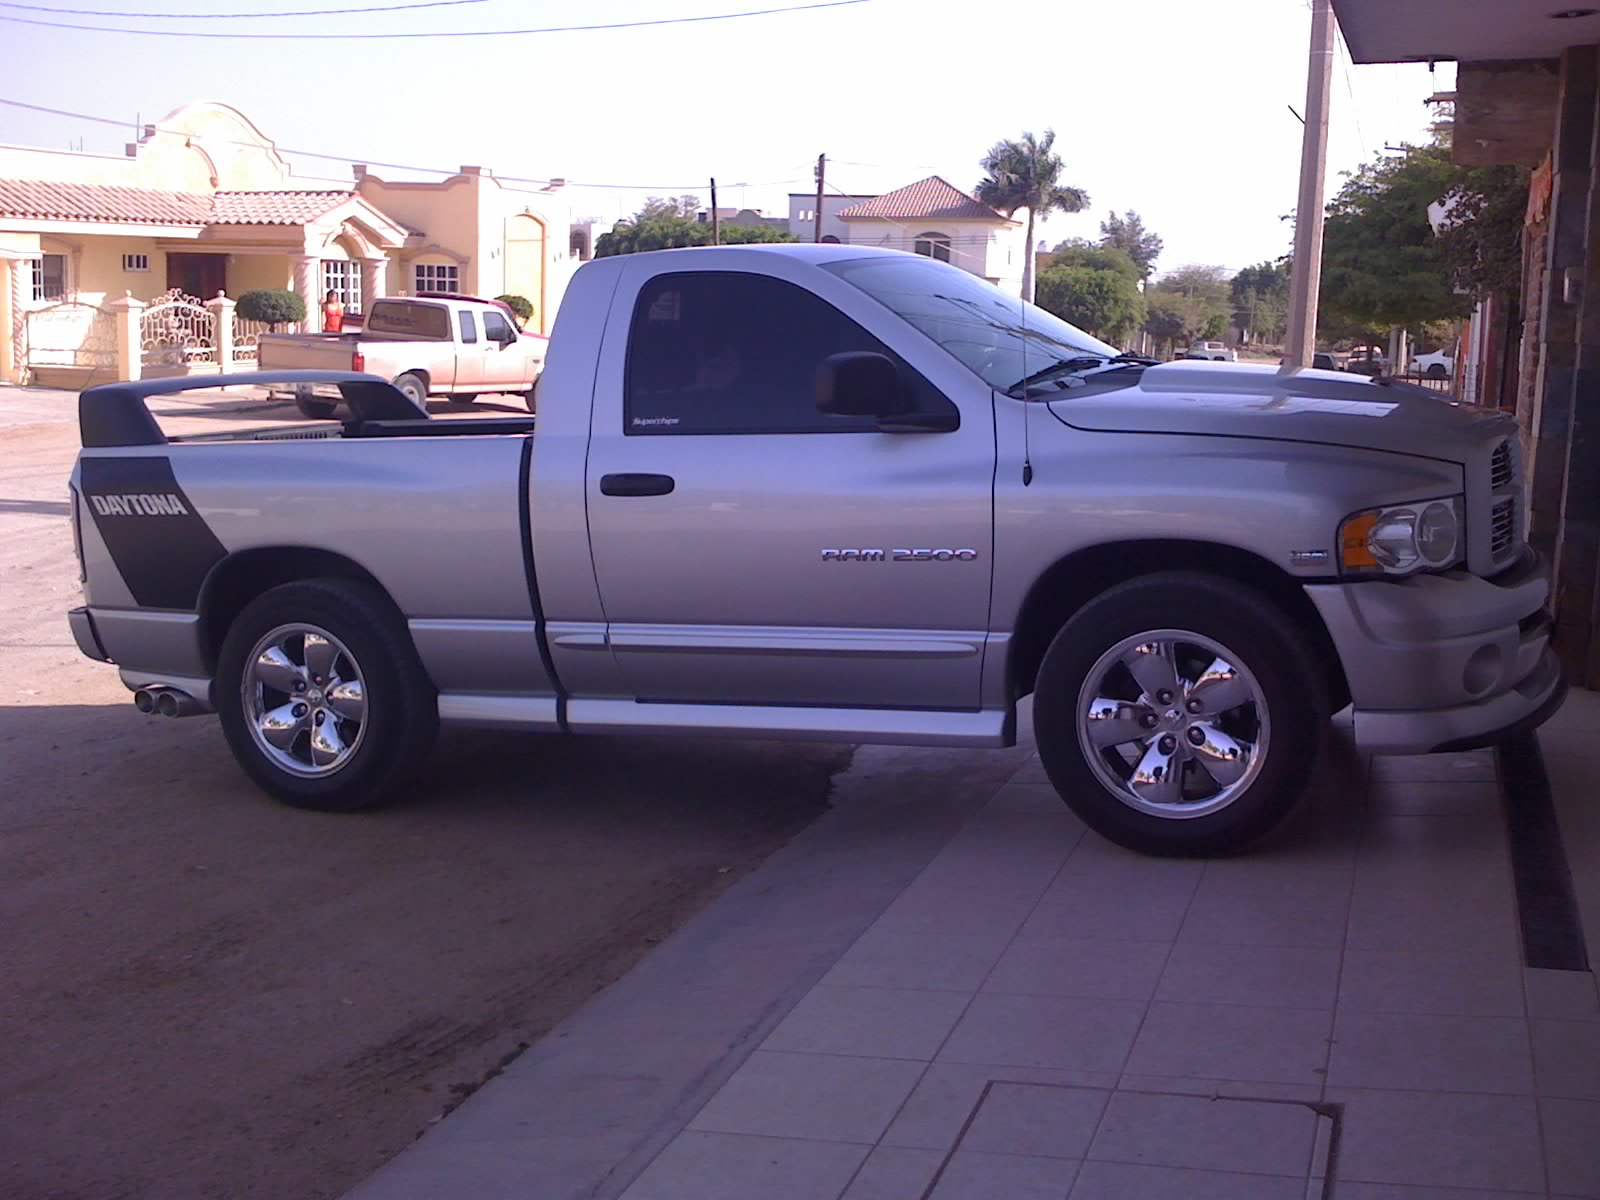 2005 dodge ram 1500 ram daytona edition 1500 1 4 mile trap speeds 0 60. Black Bedroom Furniture Sets. Home Design Ideas